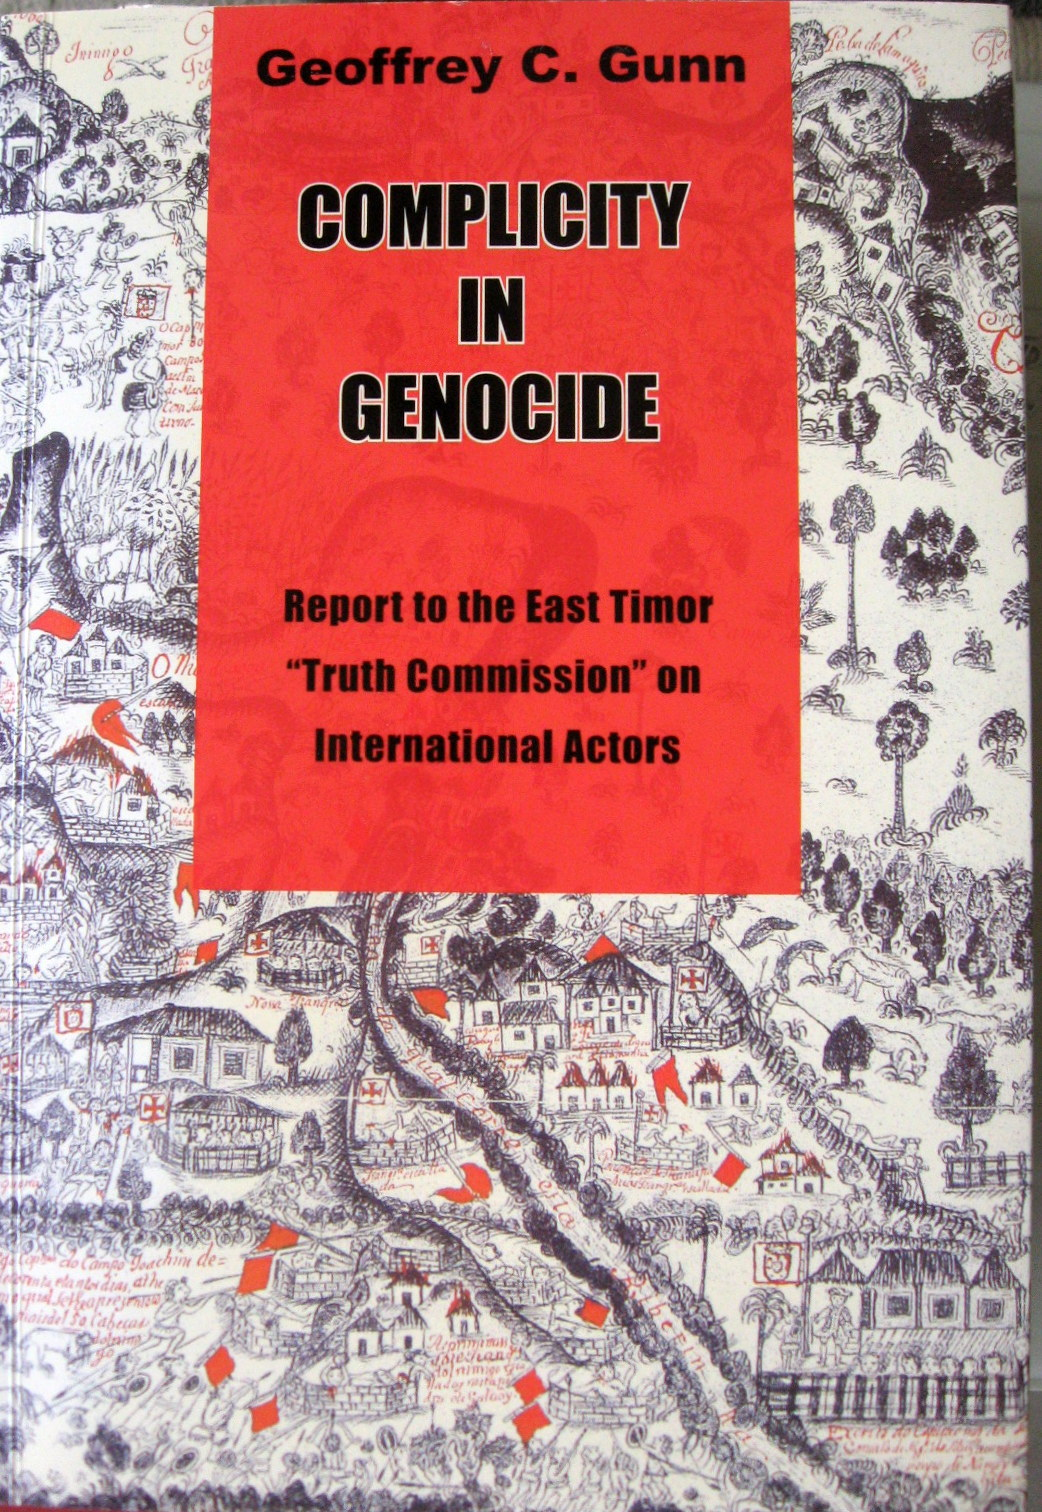 Complicity in Genocide; Report to the East Timor Truth Commission on International Actors